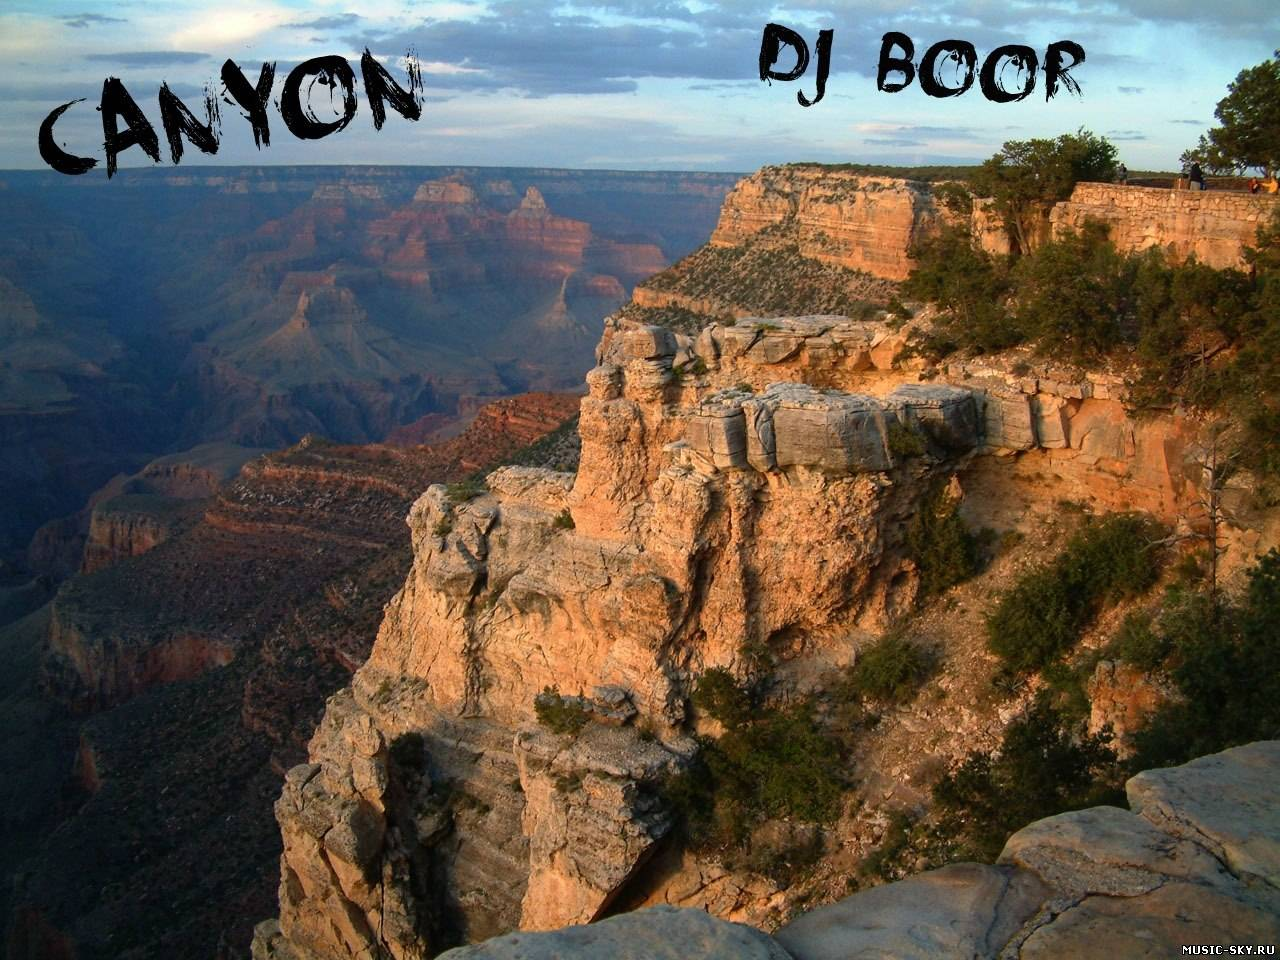 Dj Boor - Canyon (Radio Edit)